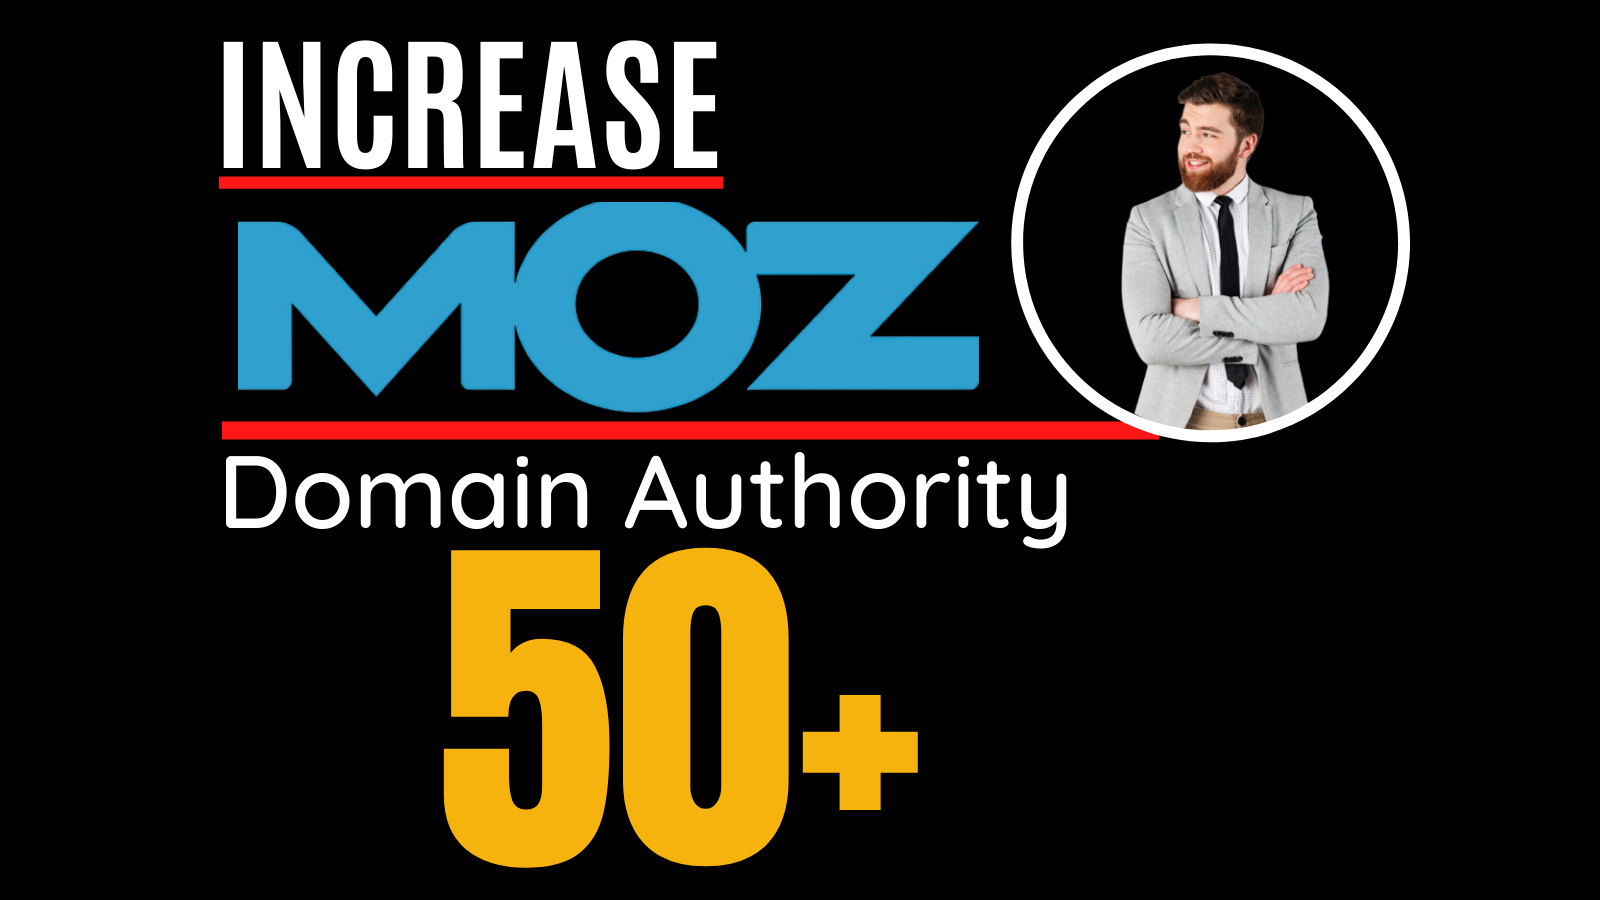 I will increase moz domain authority,  increase moz da 0 to 50 plus